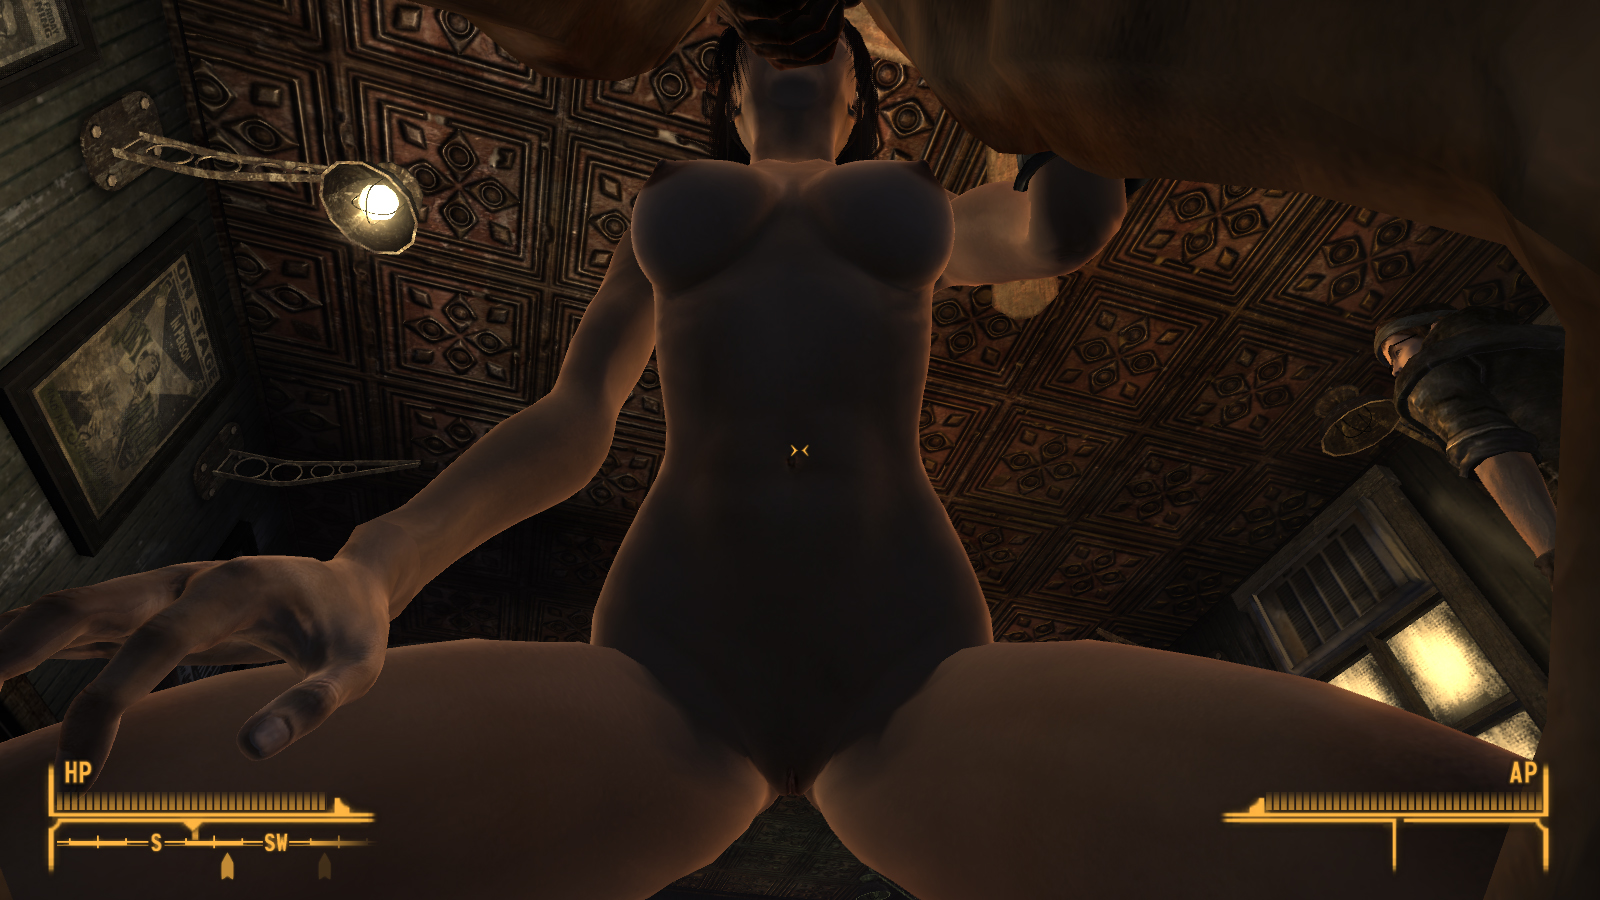 More than fallout 3 hentai mod